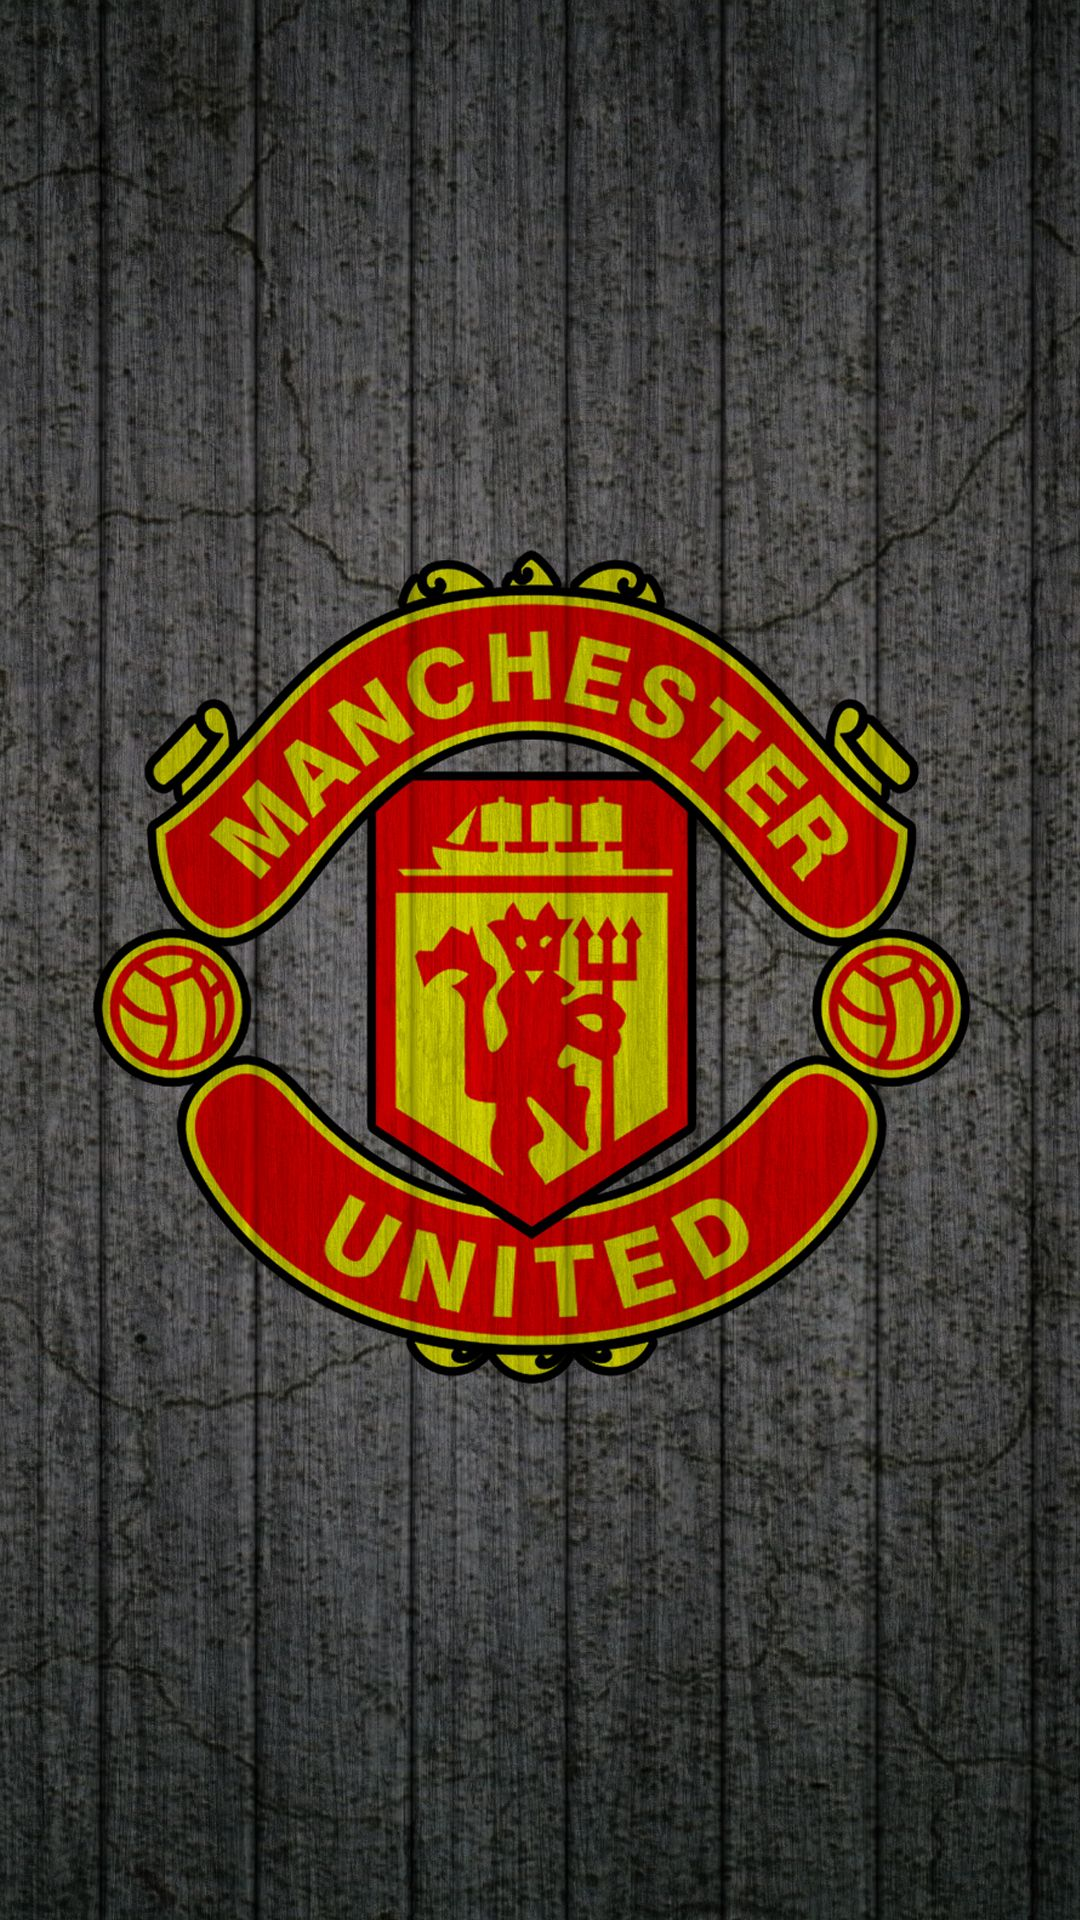 Apple Iphone 6 Plus Hd Wallpaper Manchester United Logo Hd